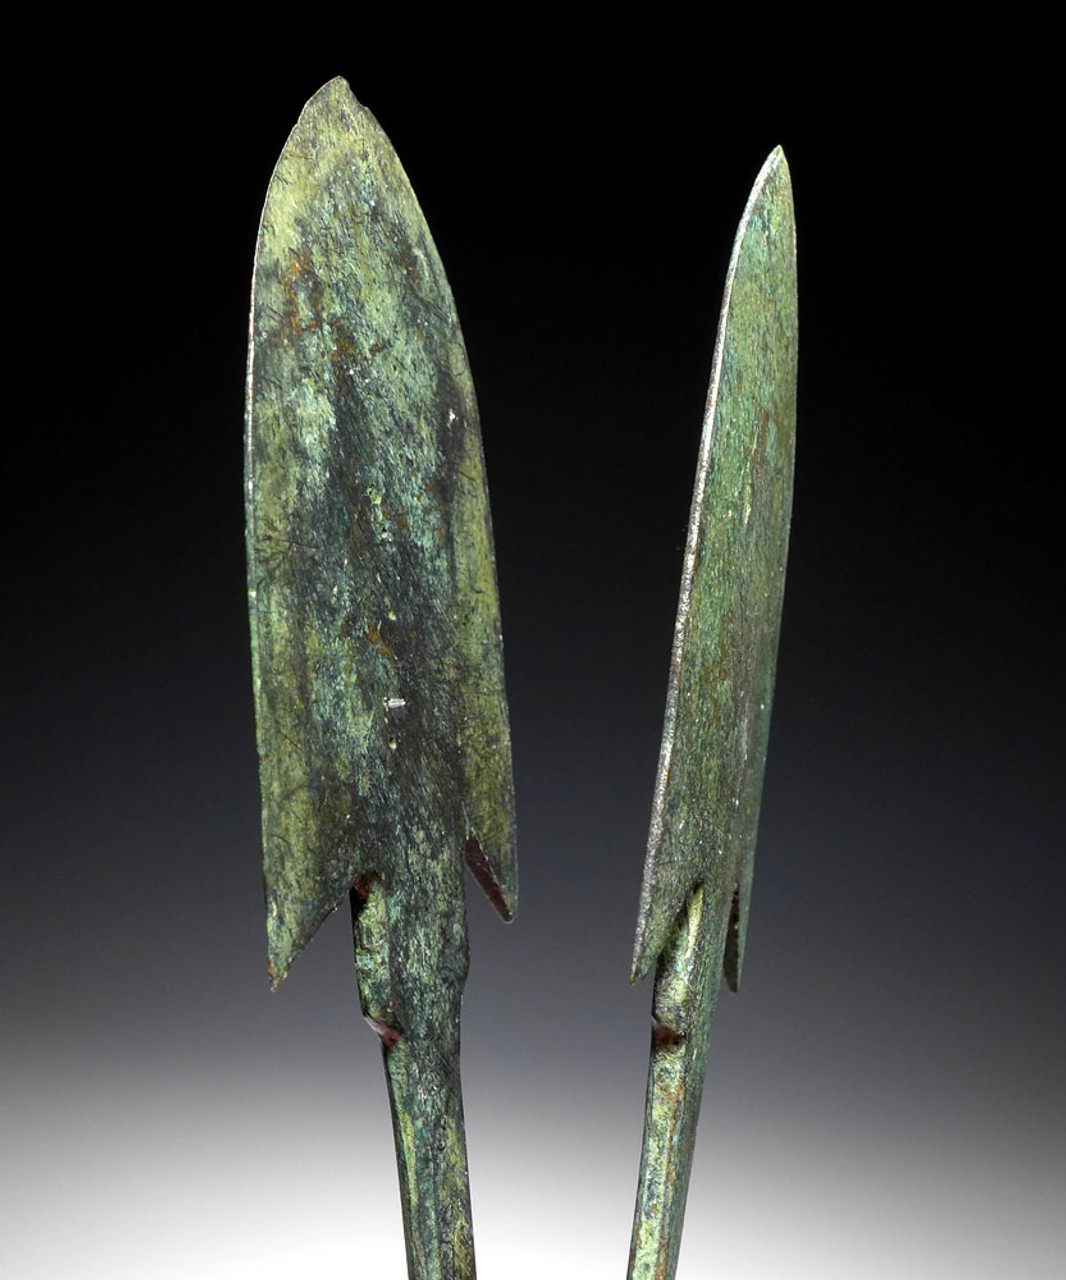 TWO VERY LARGE ANCIENT NEAR EASTERN BARBED BRONZE THROWING JAVELIN SPEARHEADS  *NE218